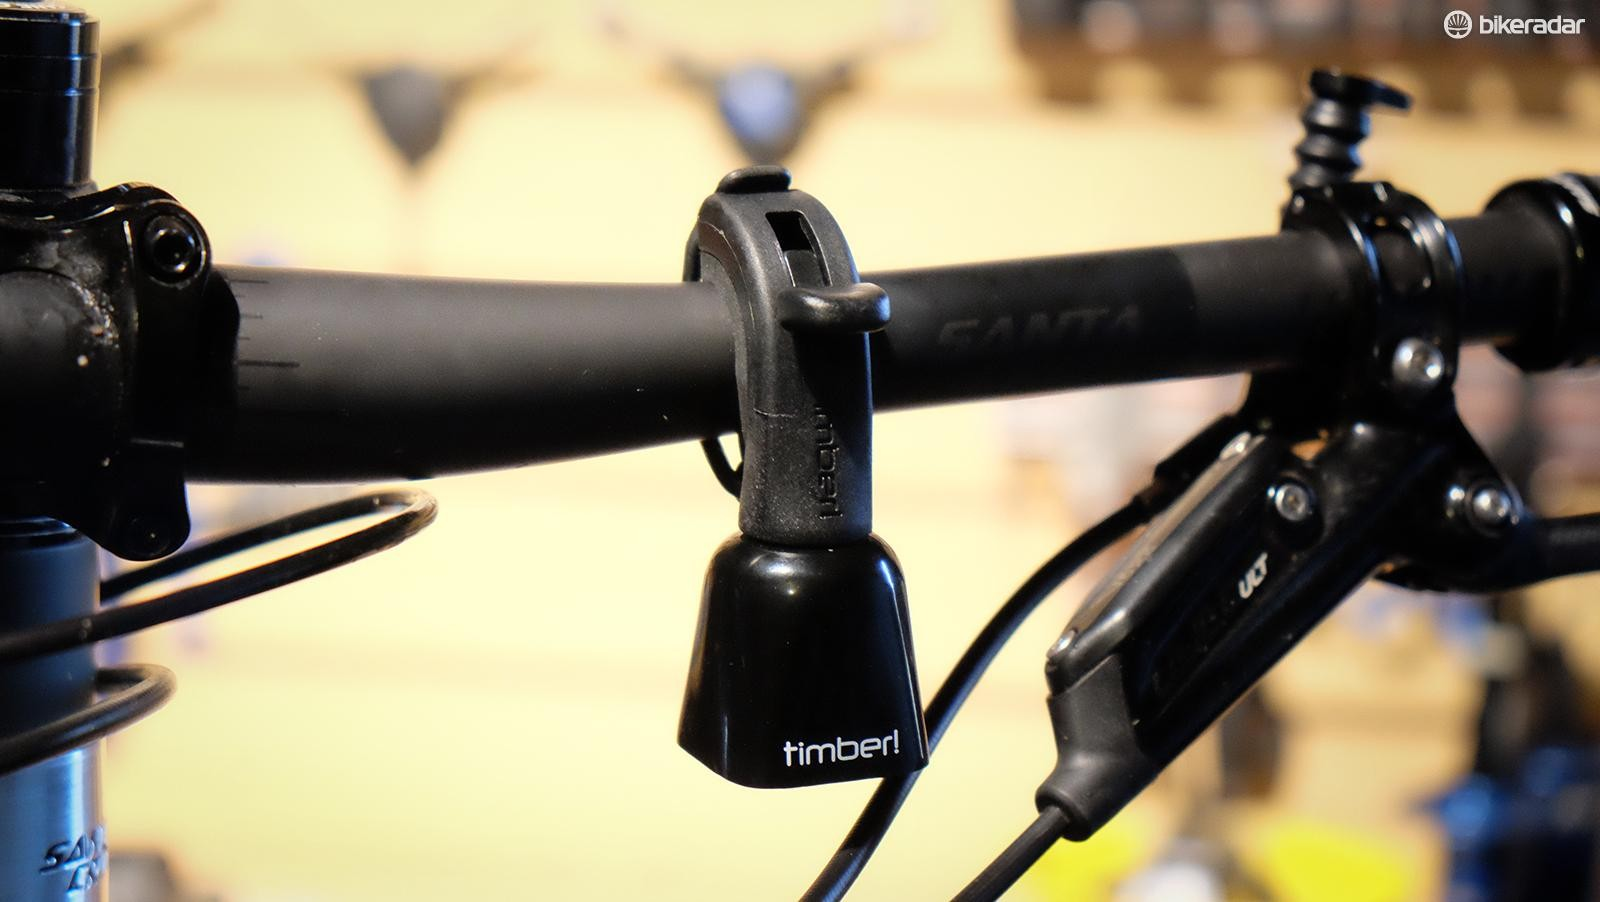 Timber has a lever that allows the rider to silence the bell when it's not needed